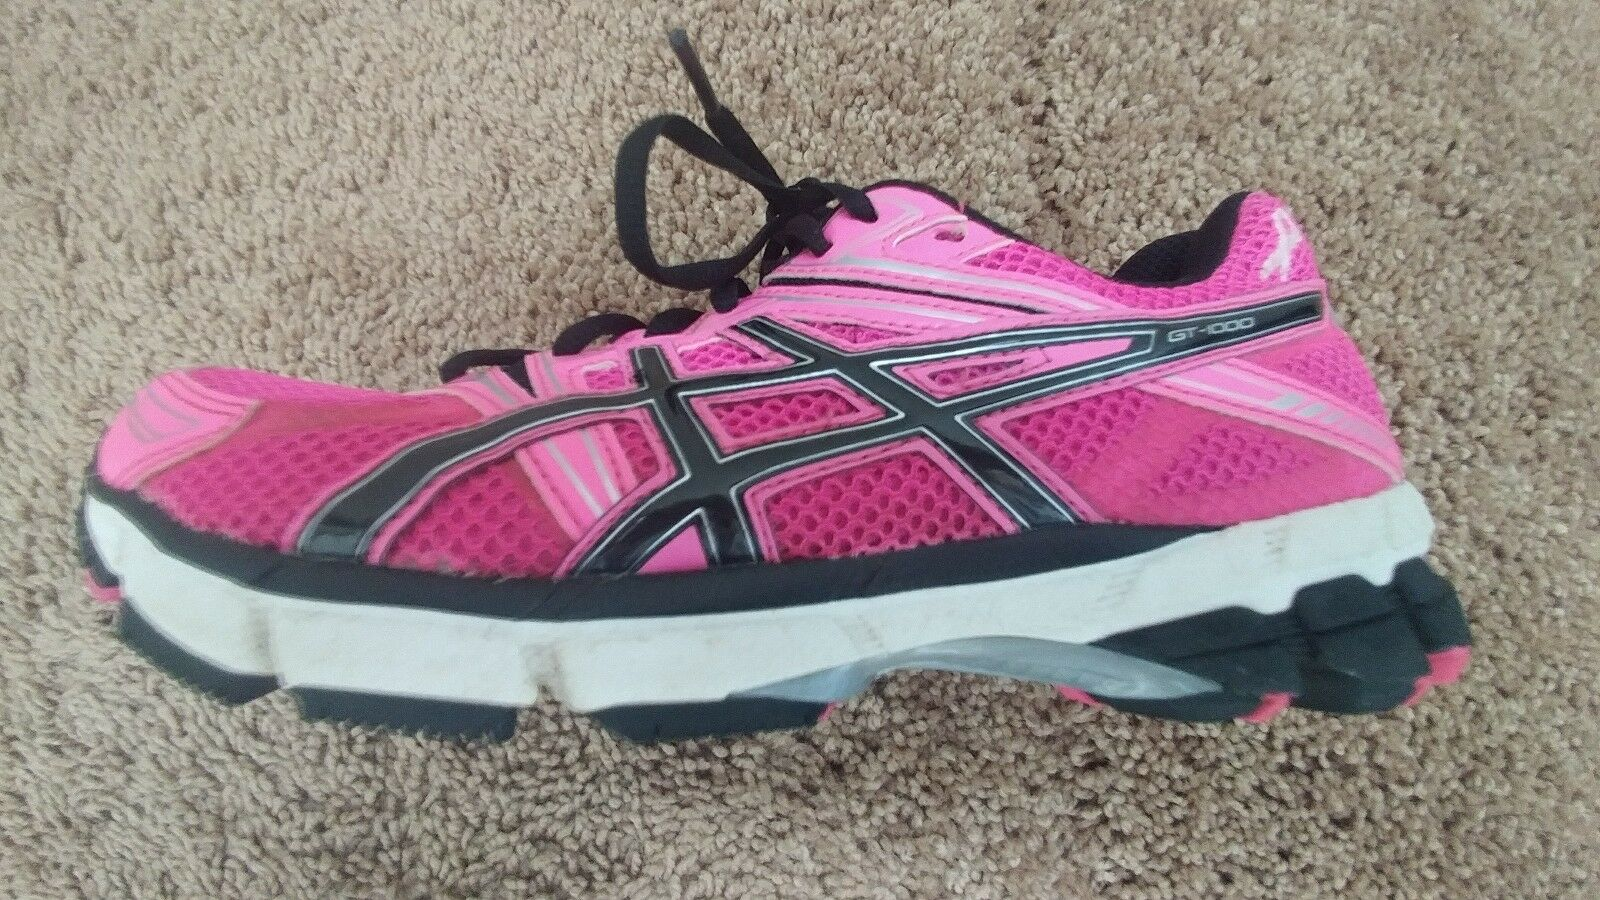 ASIXS GT-1000 Breast Cancer Men's Running Shoes